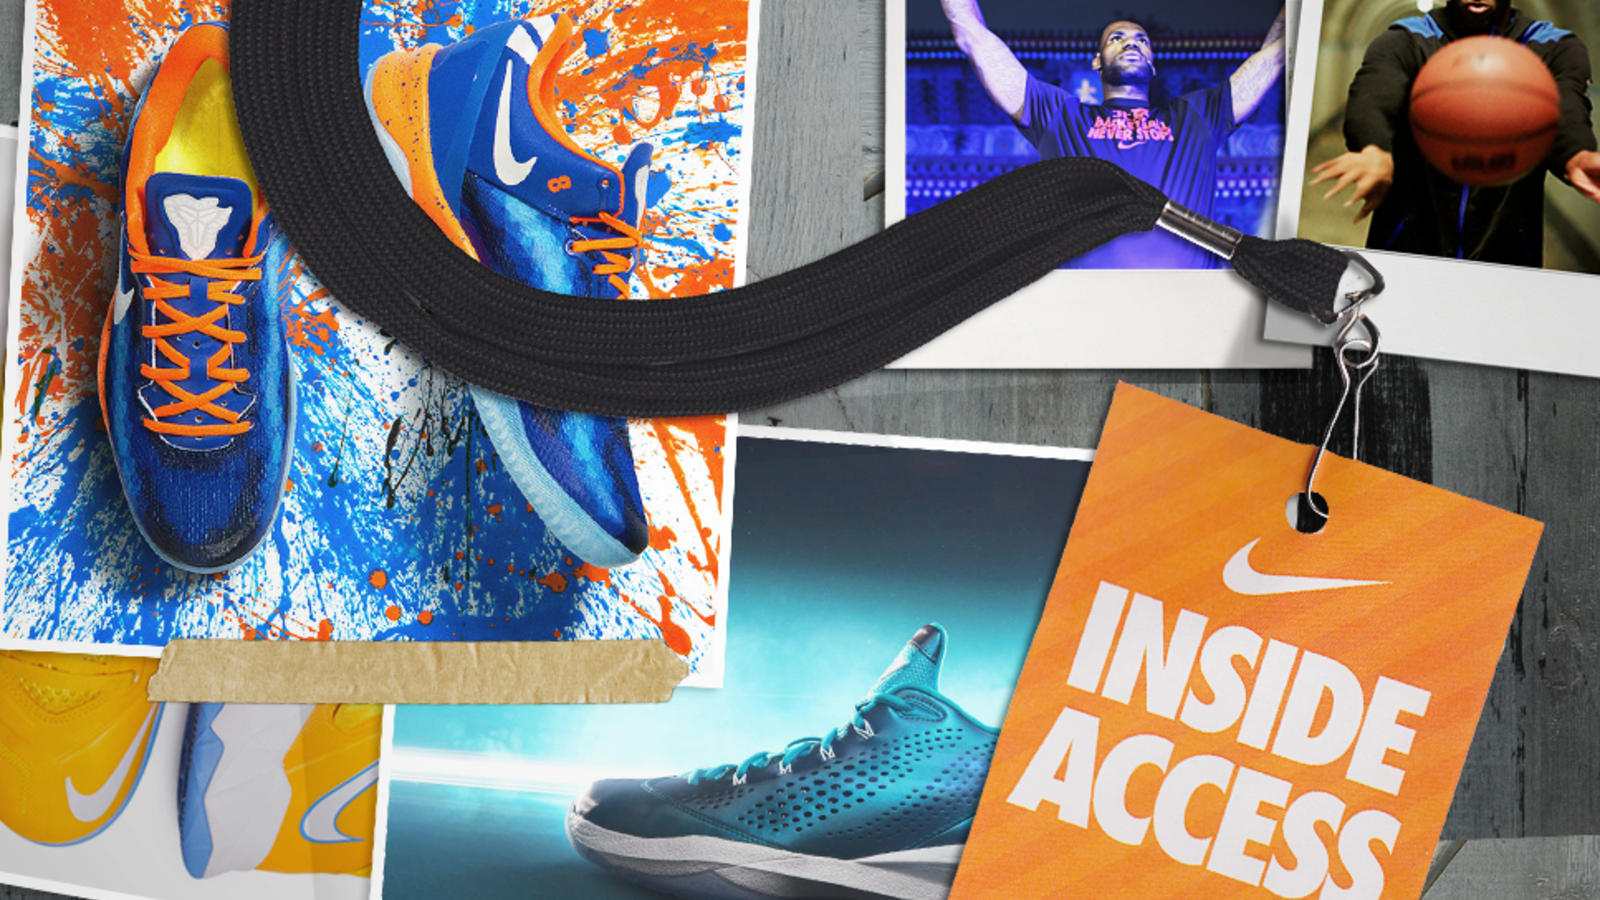 inside-access-player-edition-nikeid-badge